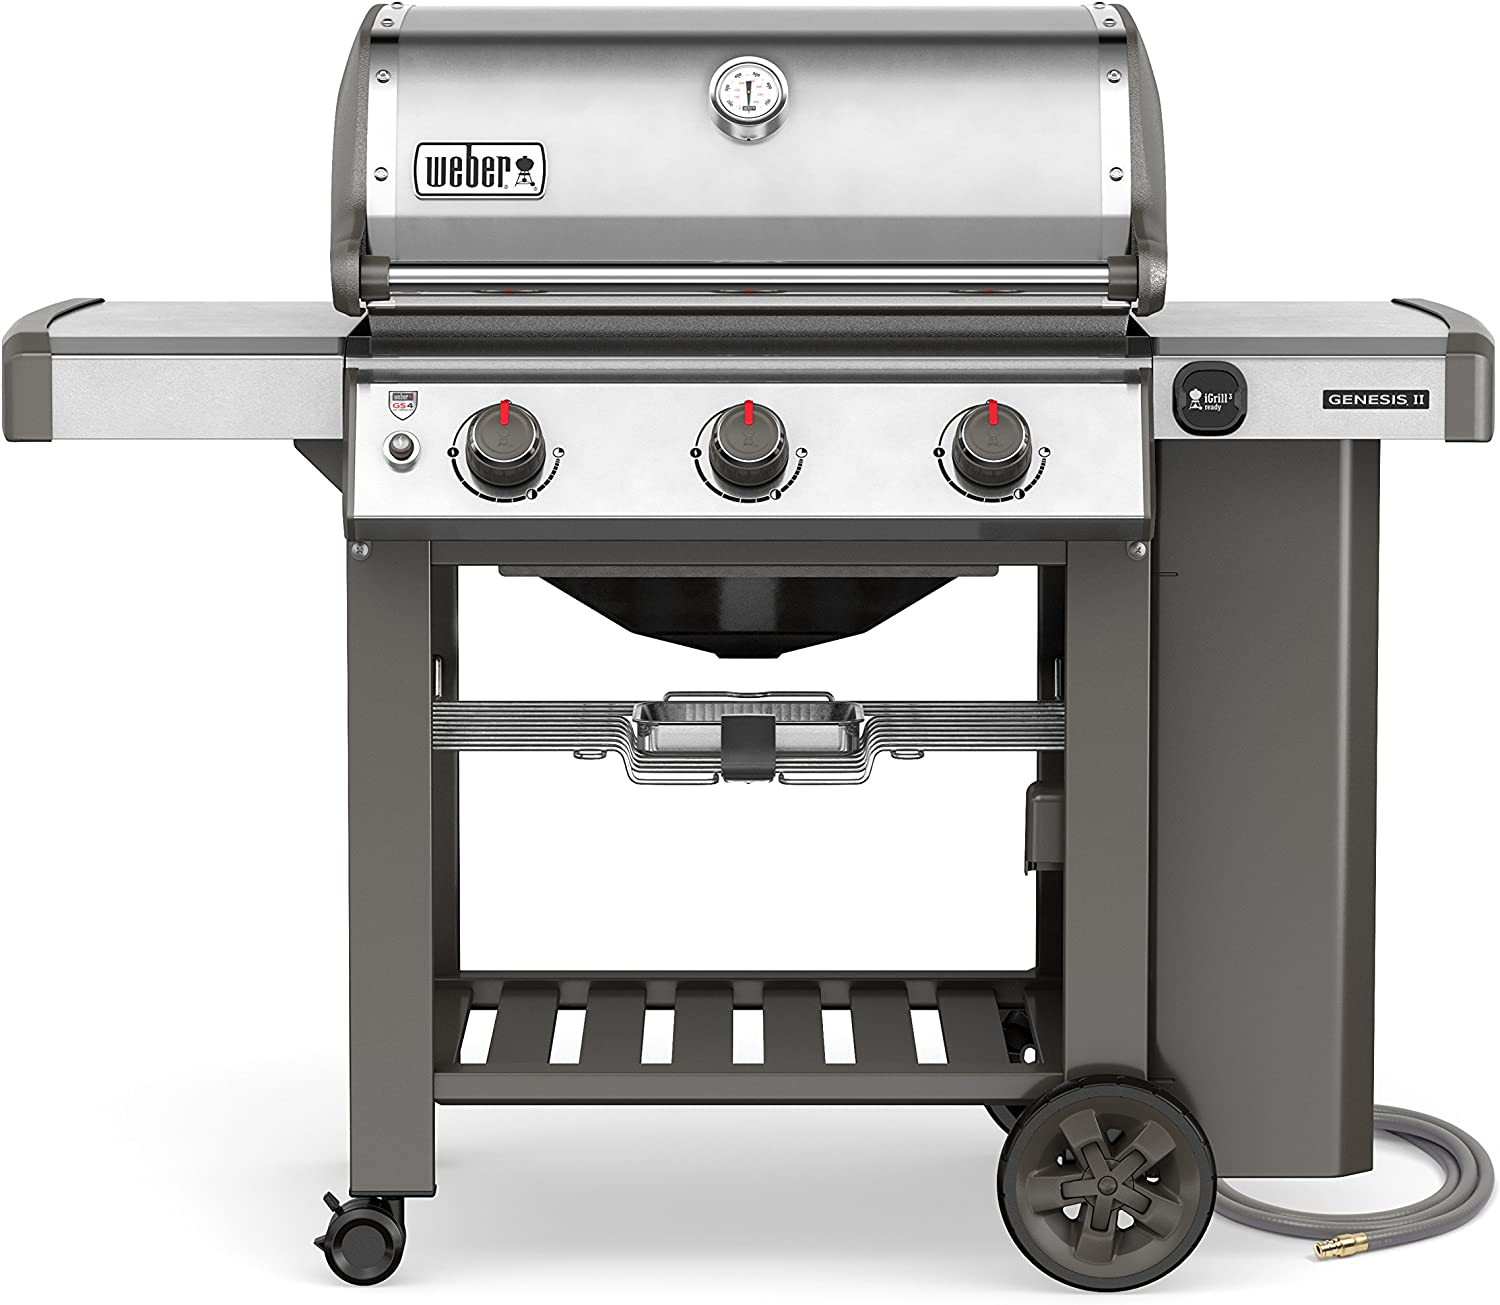 Weber 66000001 Genesis II S-310 Natural Gas Grill review